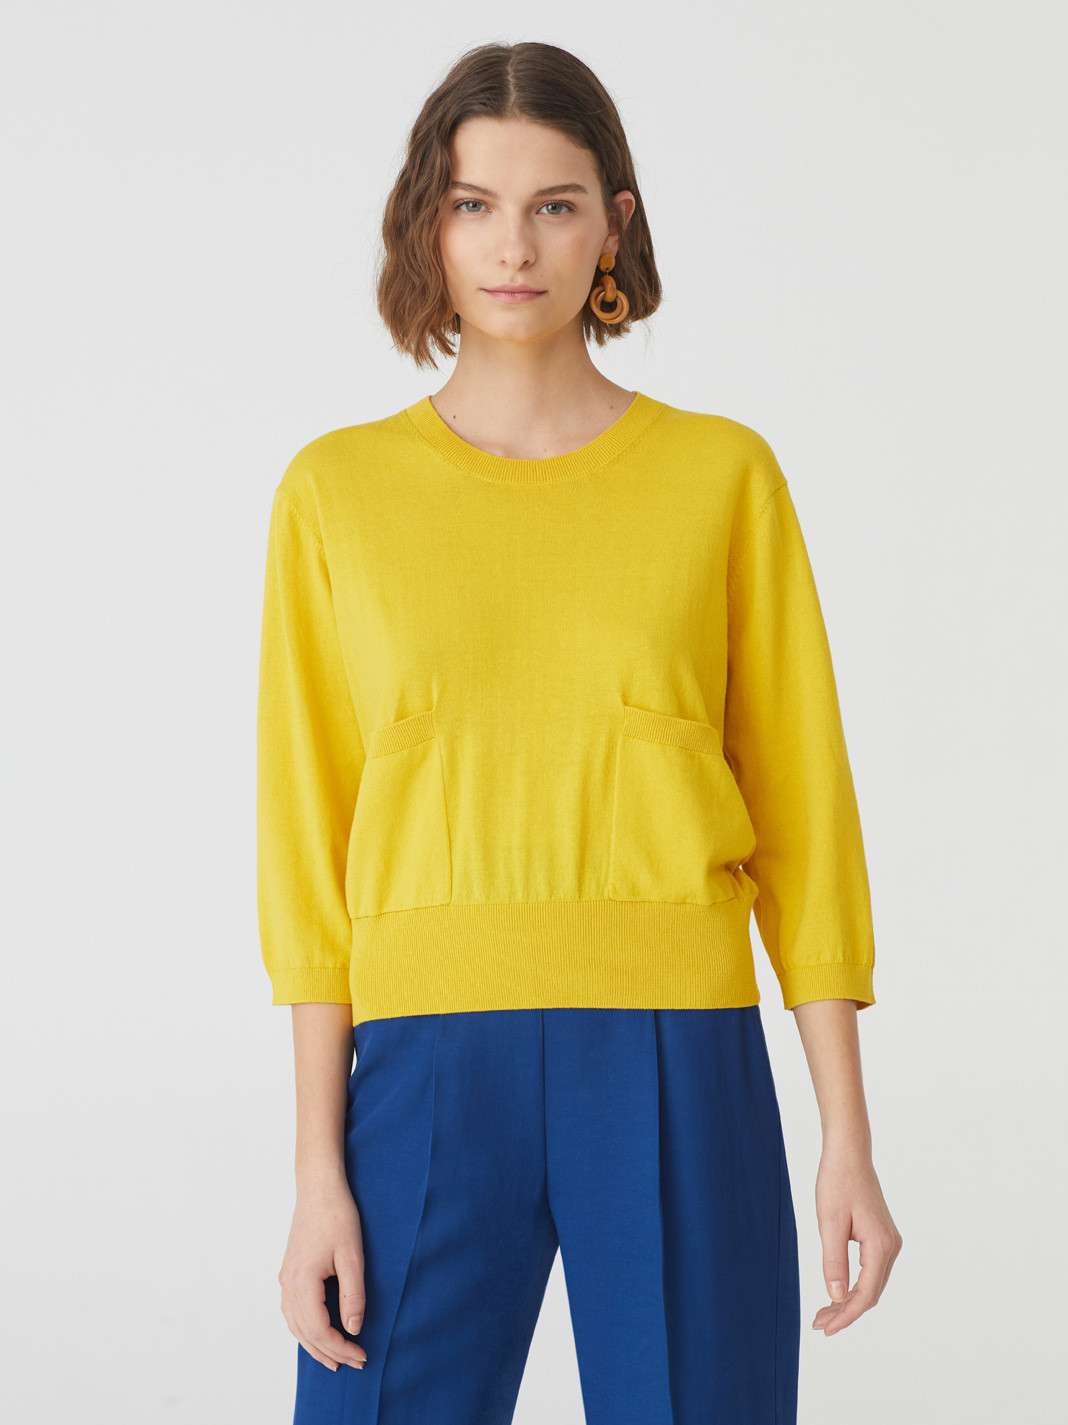 Short Sleeves Tricot Top With Pockets Intense Yellow